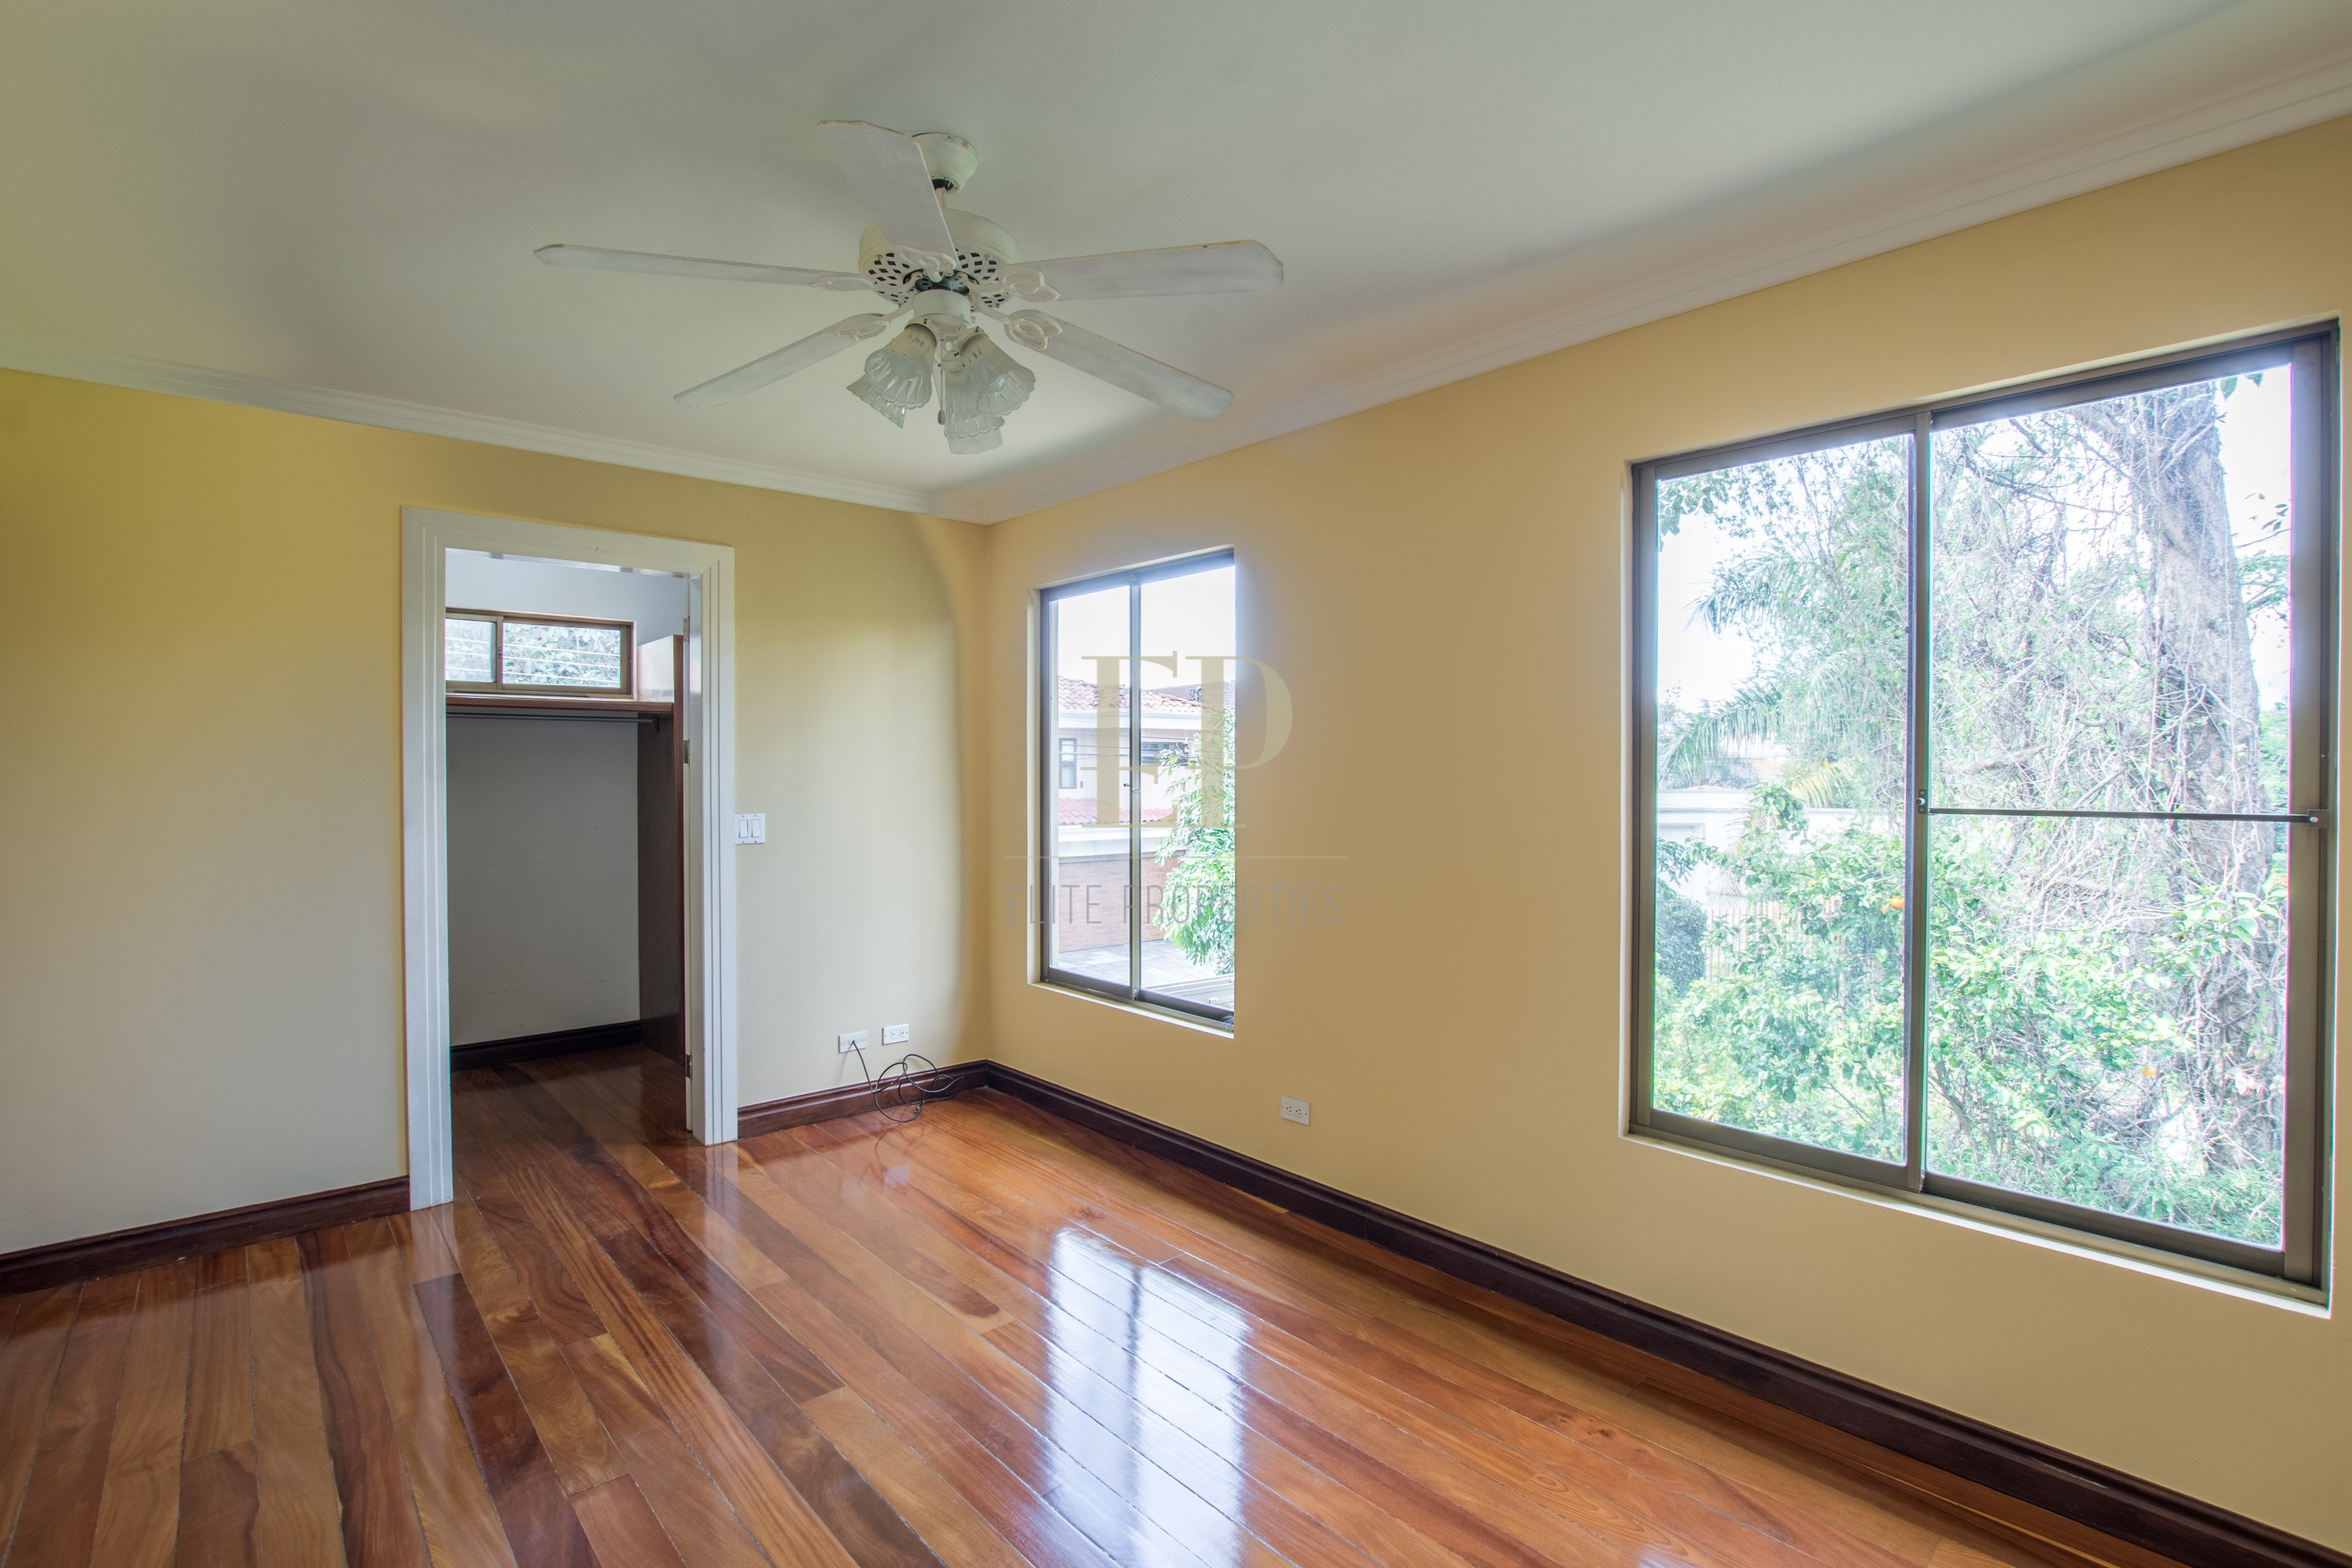 Two story independent home with terrace and garden